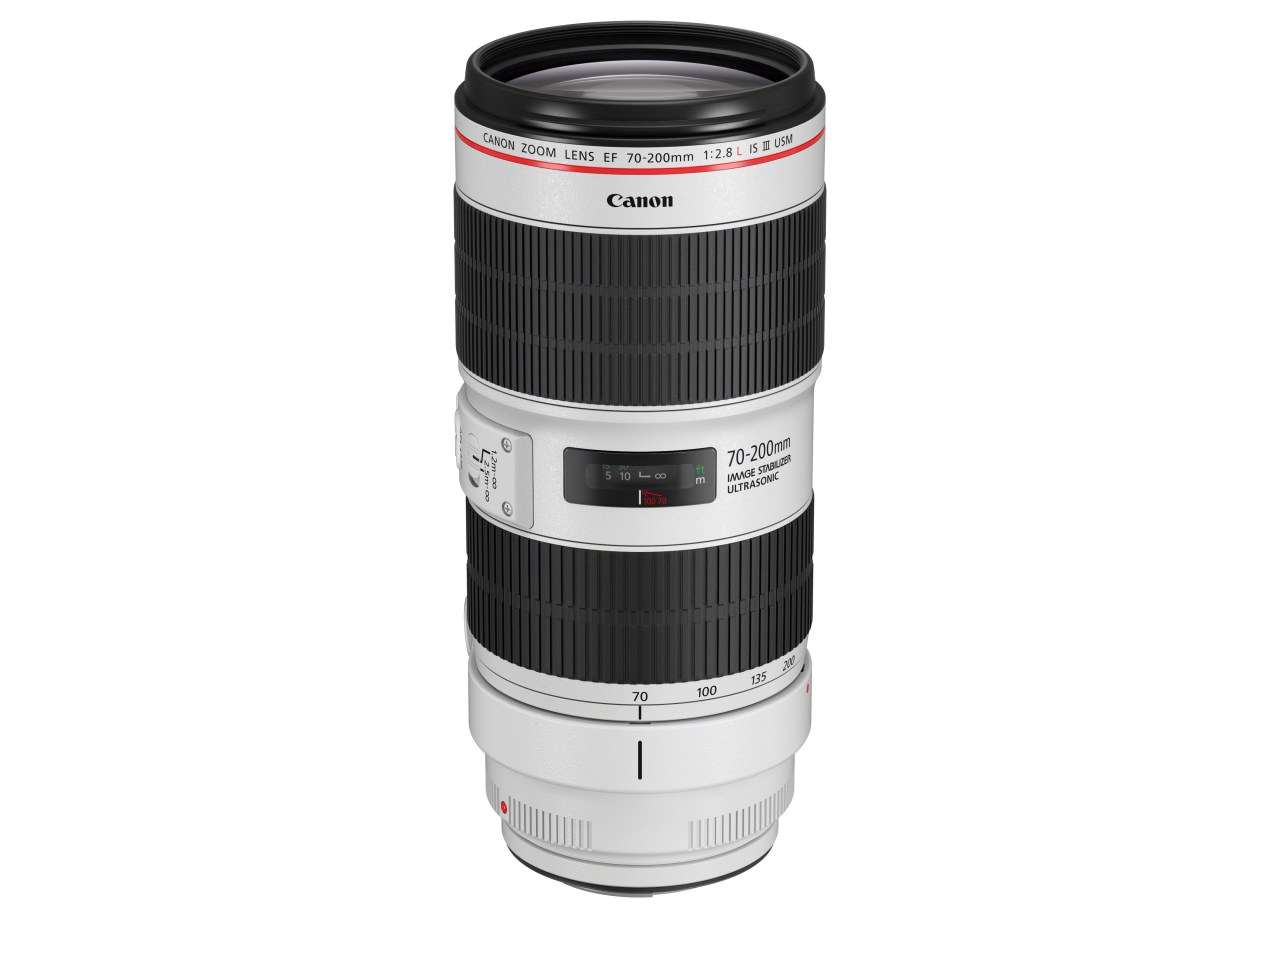 Canon upgrades two of their most loved and well-regarded L-series lenses